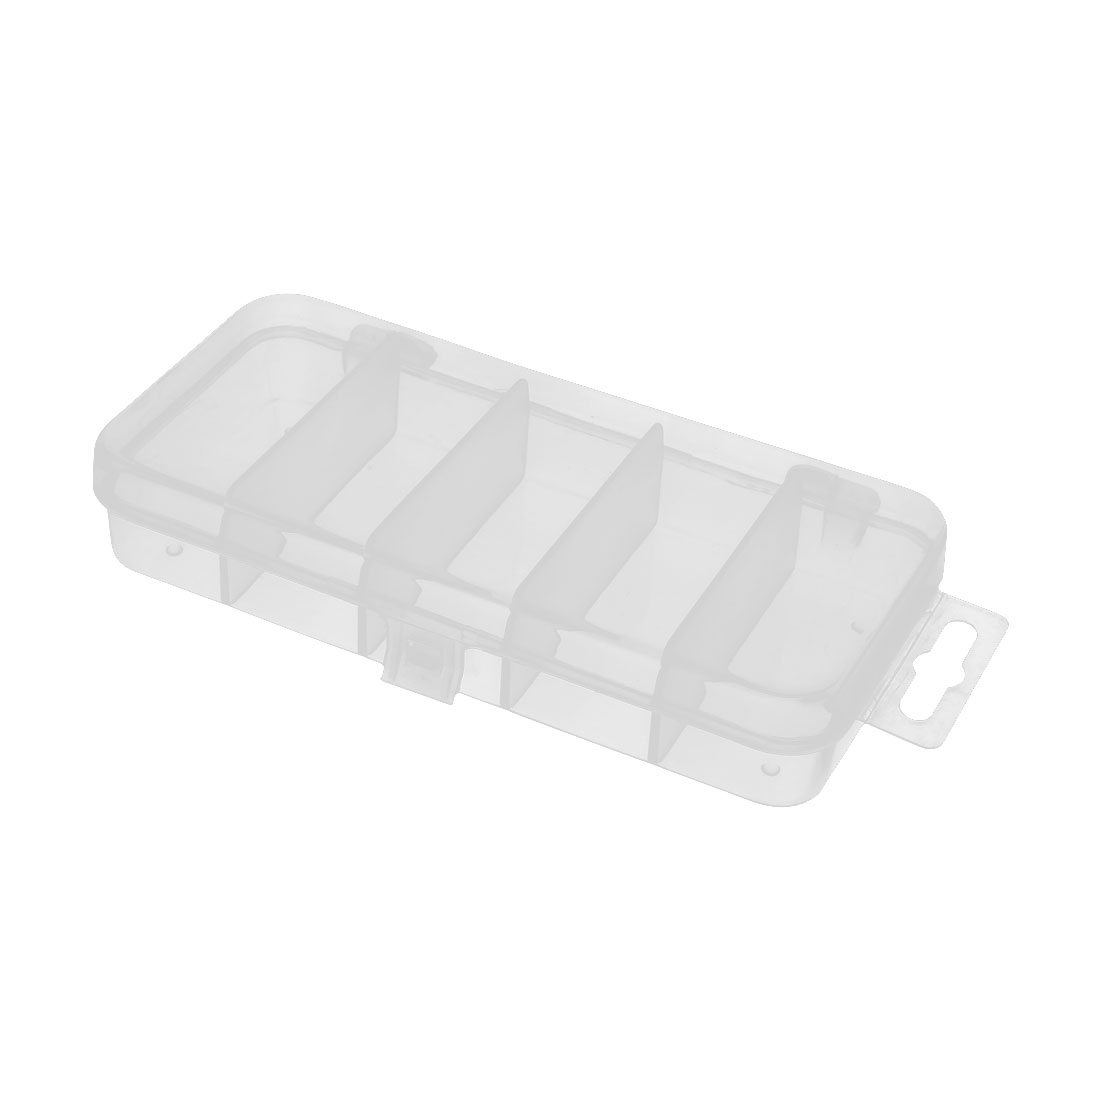 Plastic 5 Compartments Fishing Lure Bait Tackle Tool Storage Box Case Clear by Unique-Bargains